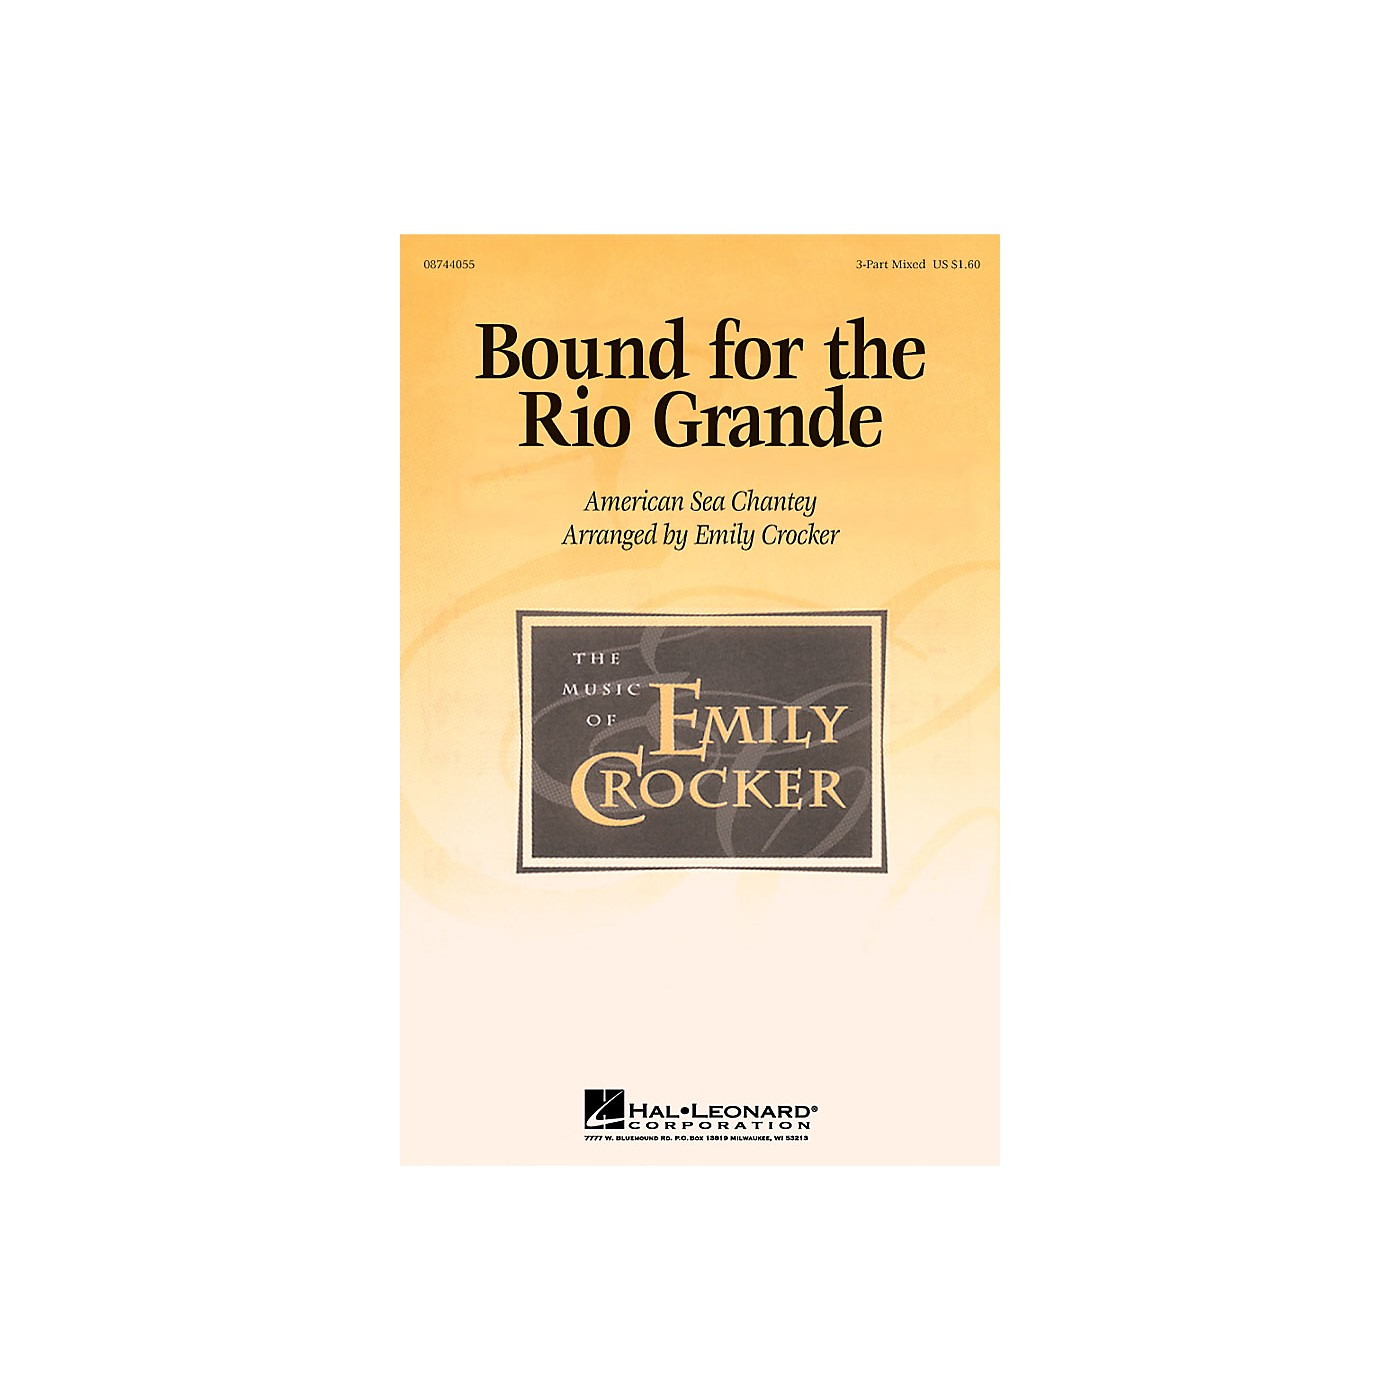 Hal Leonard Bound for the Rio Grande 3-Part Mixed arranged by Emily Crocker thumbnail